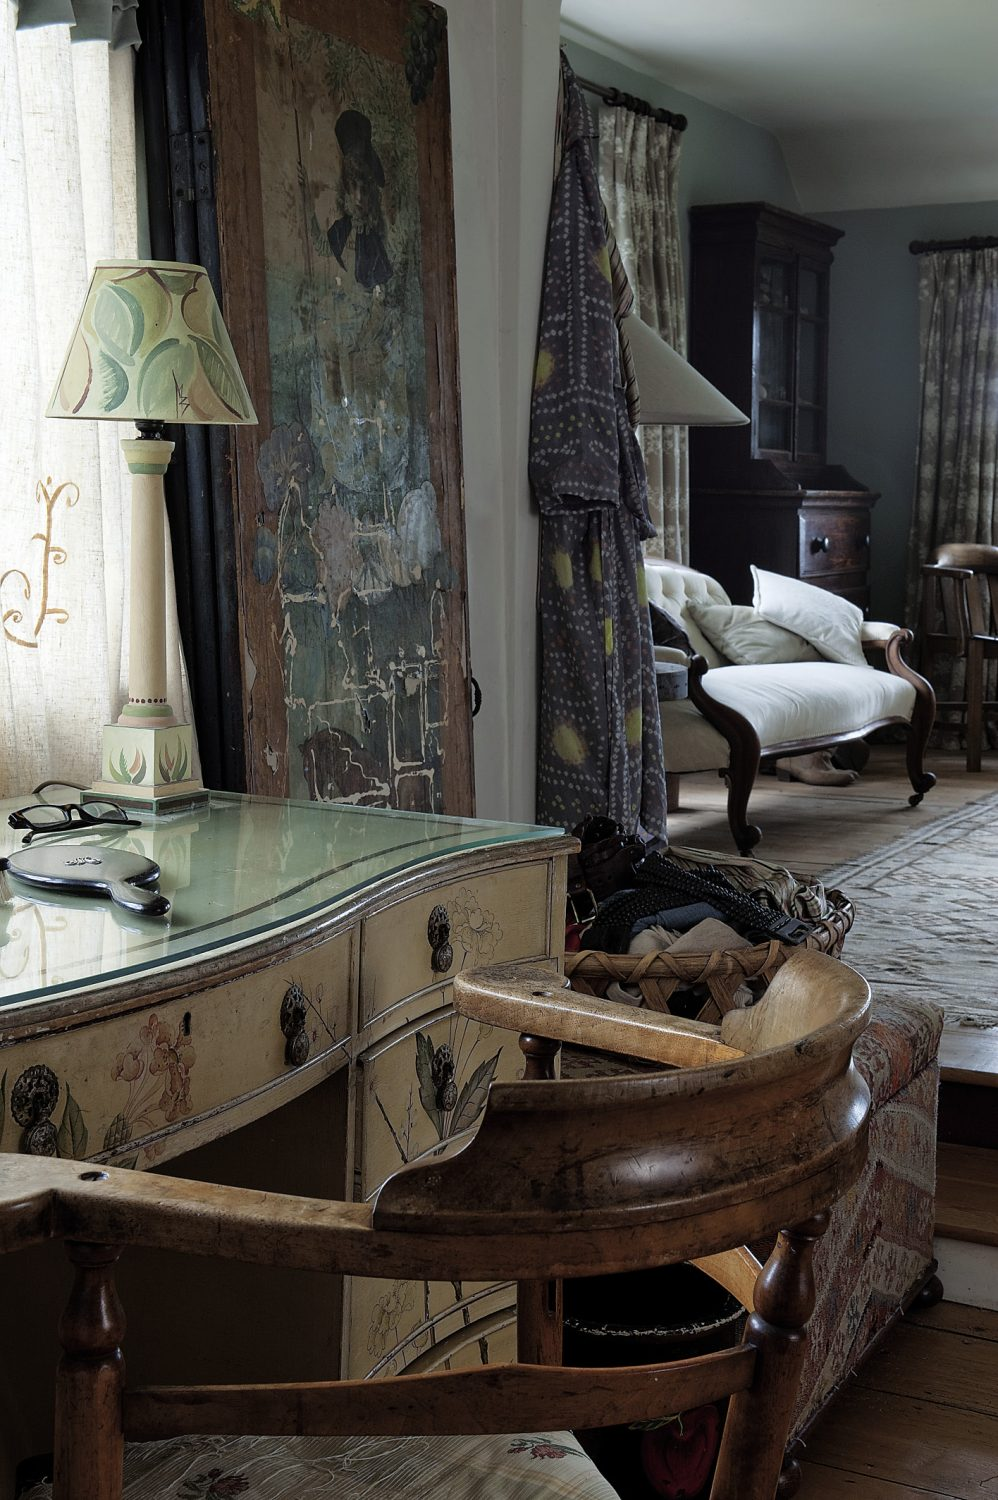 The centrepiece of Veronica's anteroom-cum-dressing-room-cum-office is a terrific, perhaps French dressing table with flower motifs